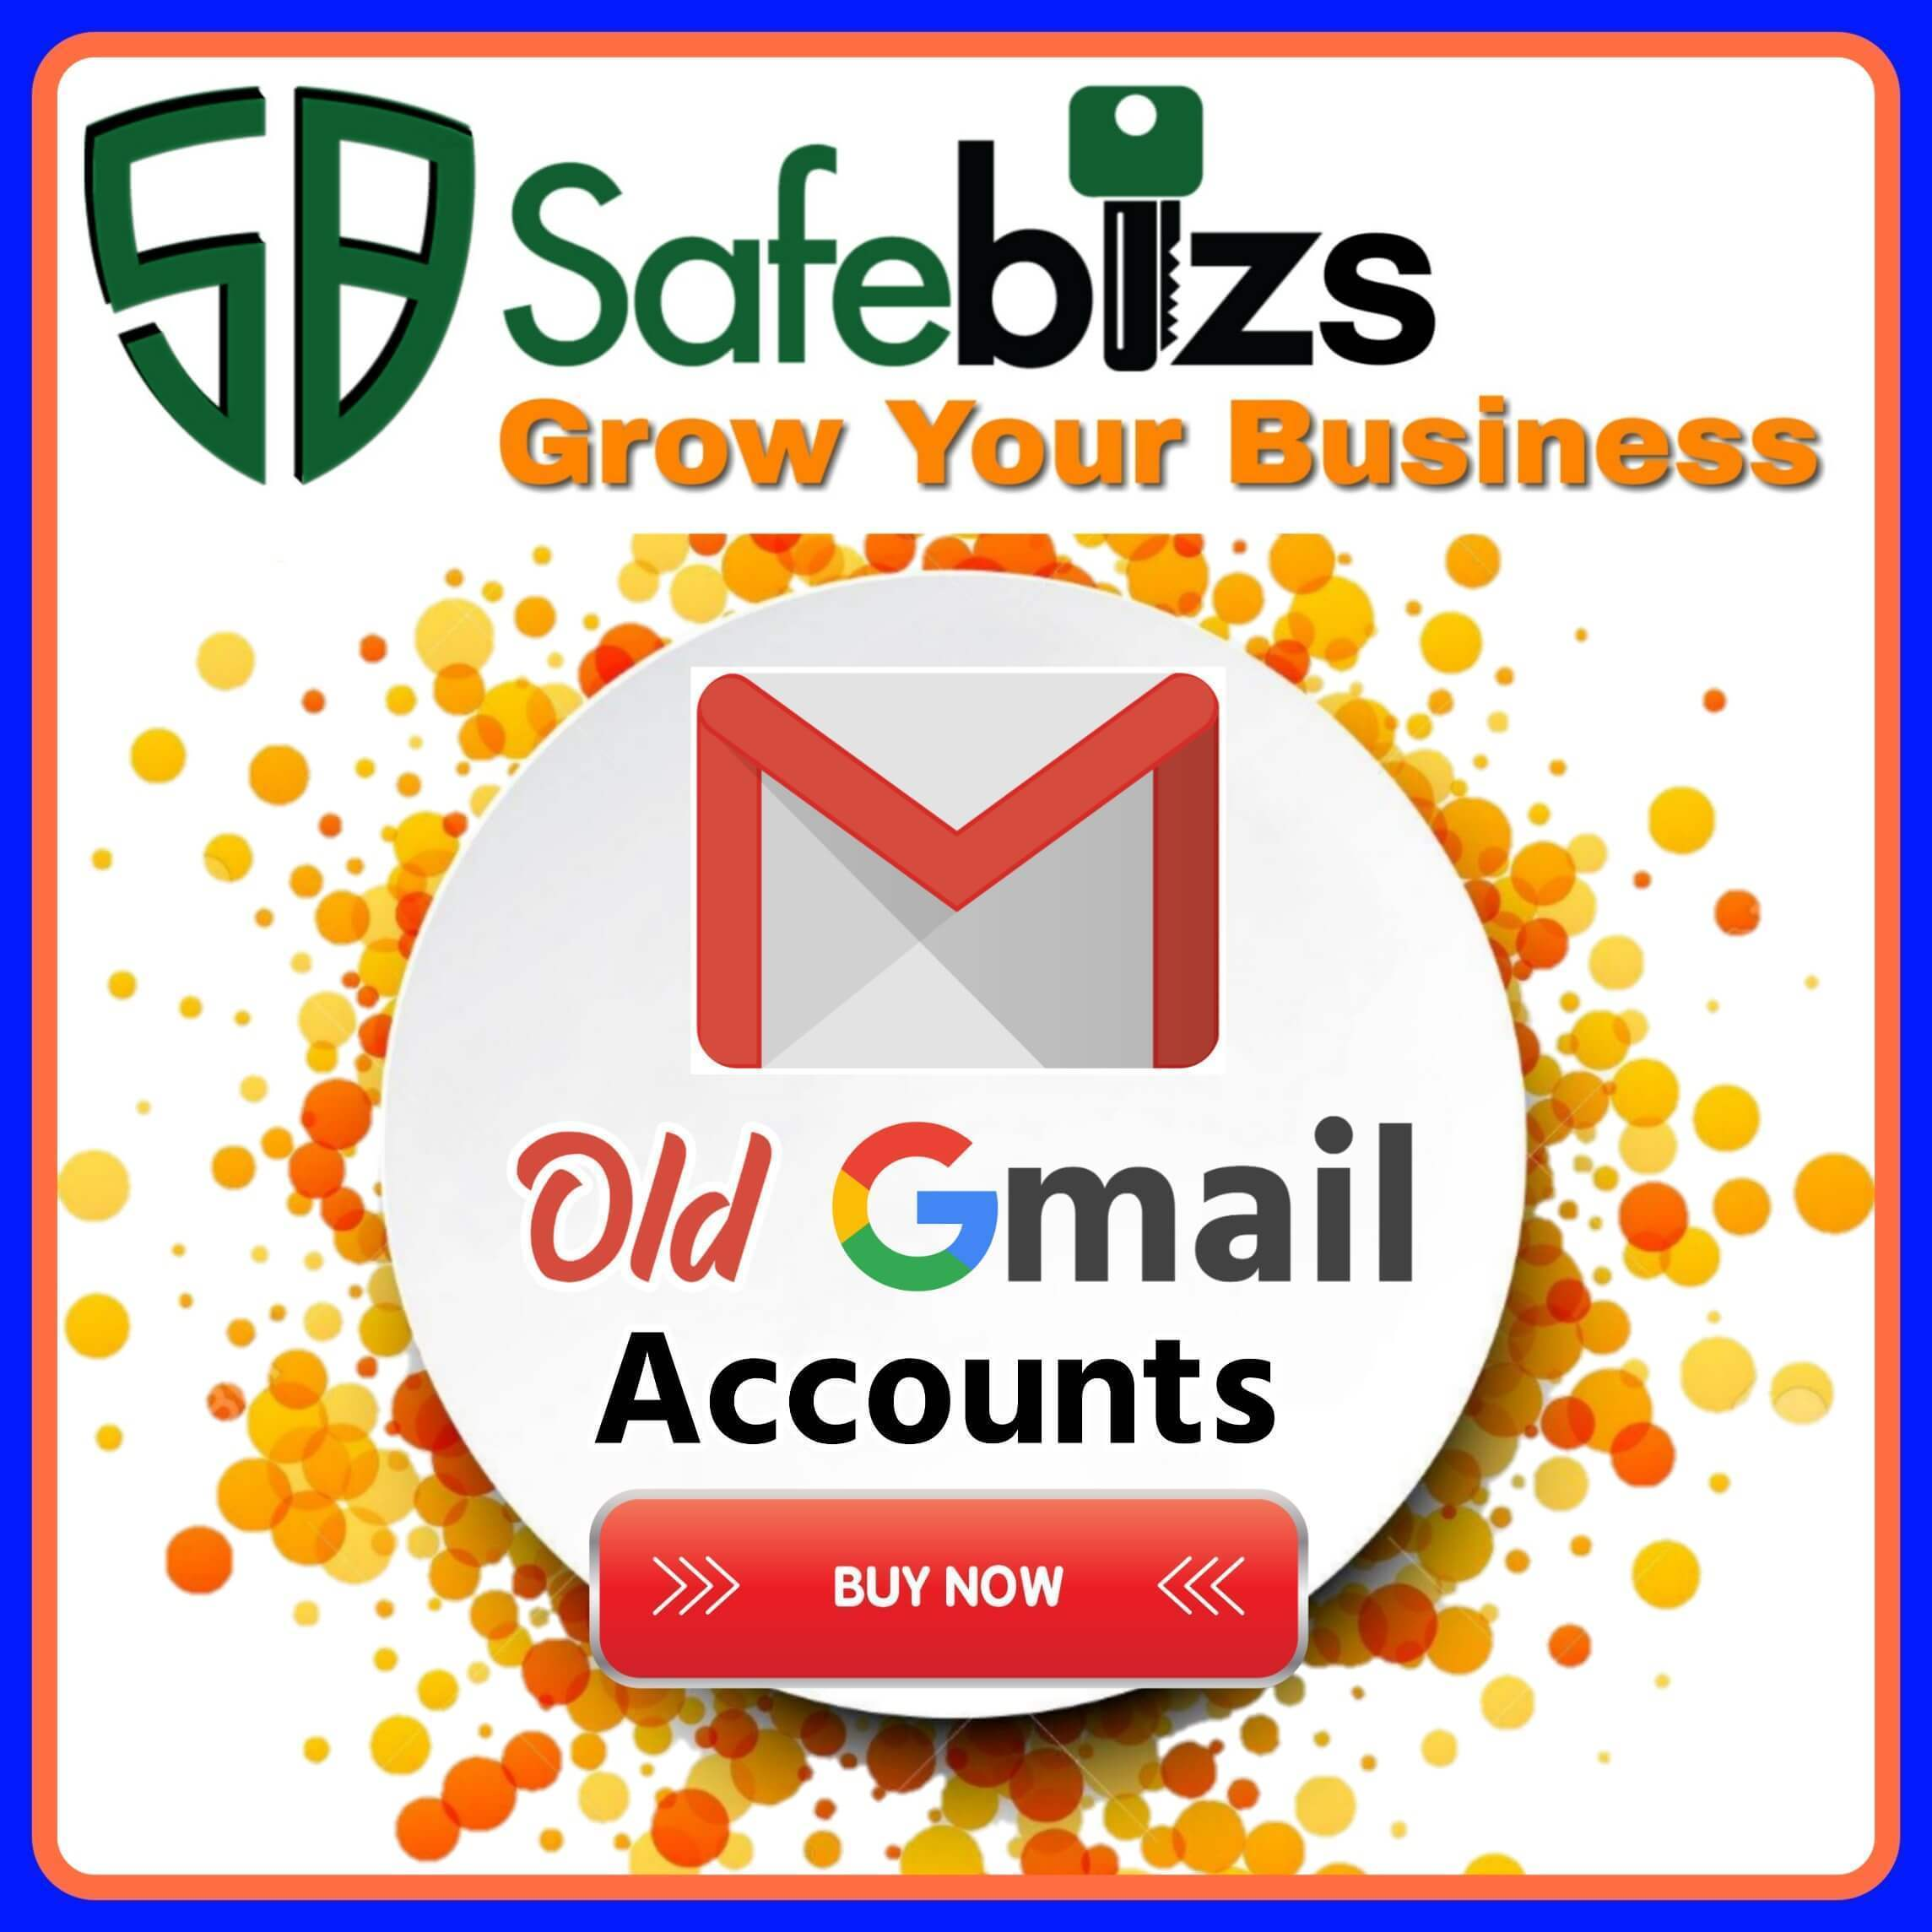 Buy Old Gmail Accounts - 100% Real and Phone Number Verified